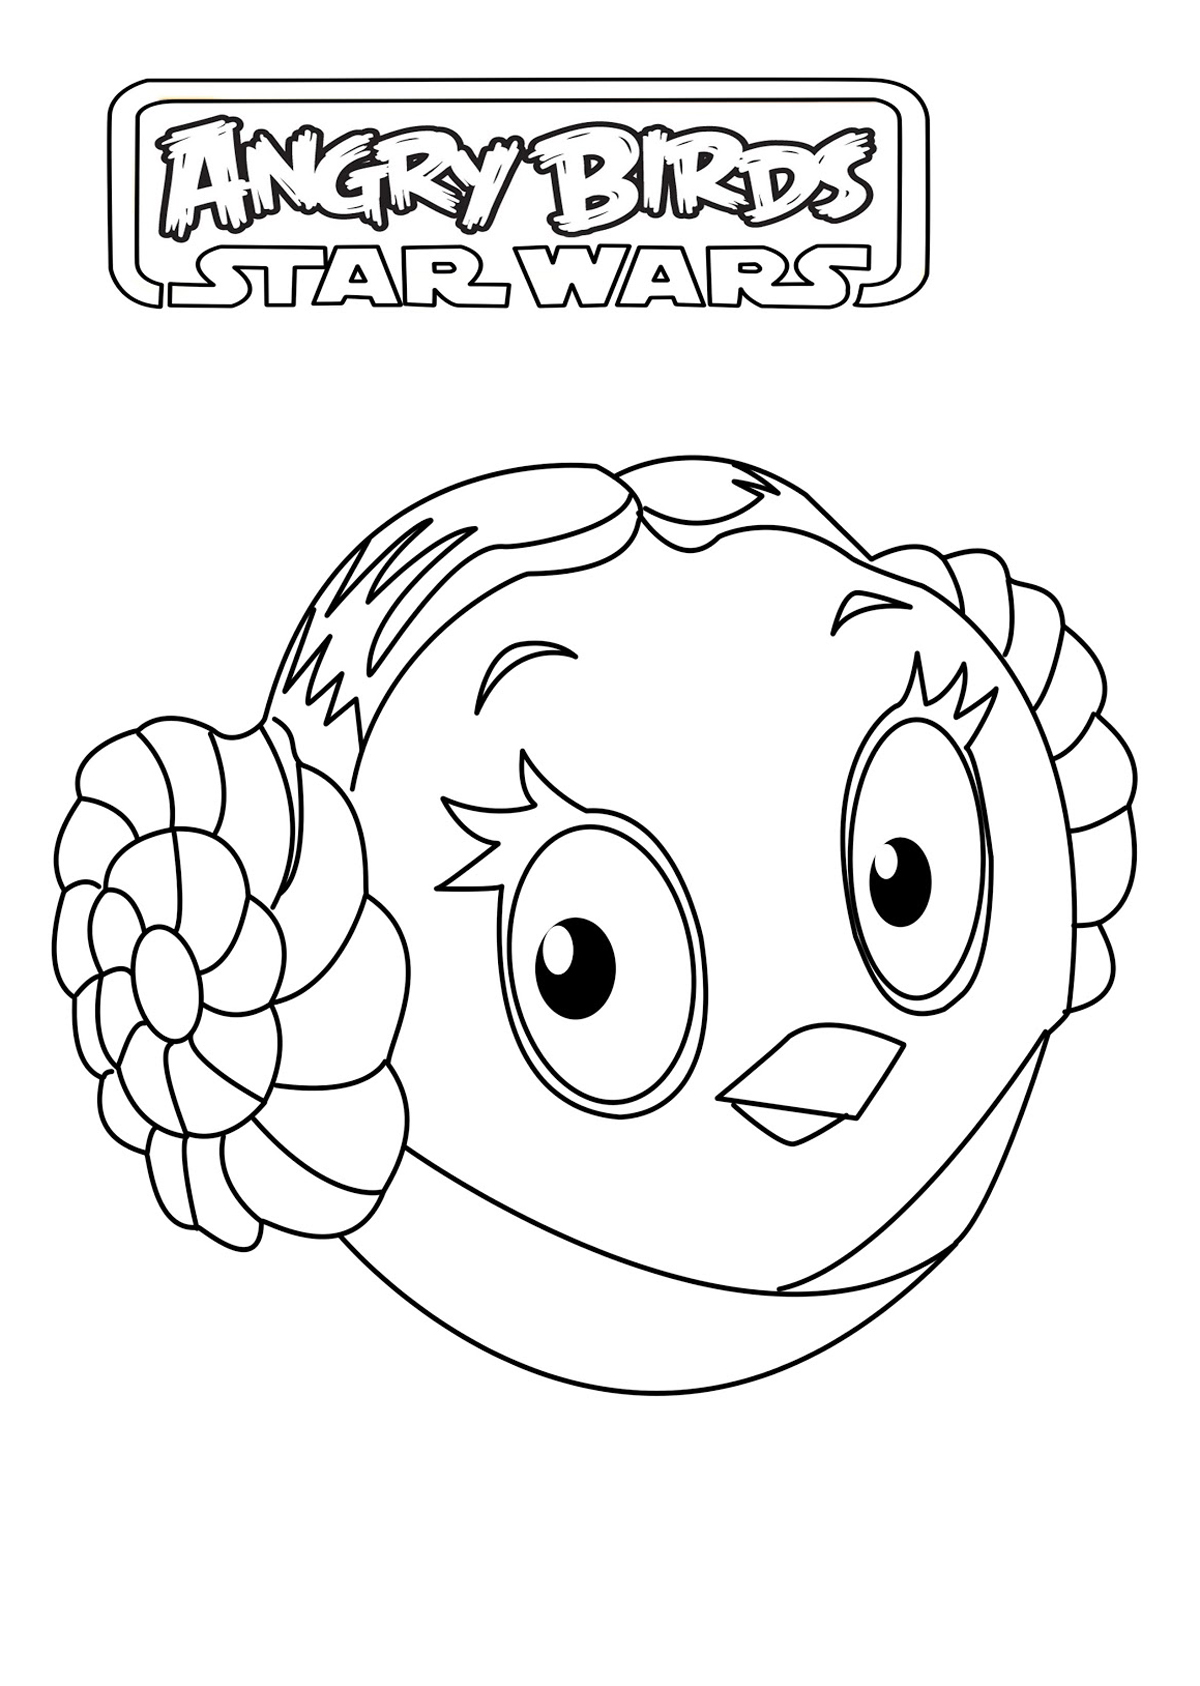 star wars angry birds coloring pages kids n funcom 7 coloring pages of angry birds star wars coloring birds pages angry star wars